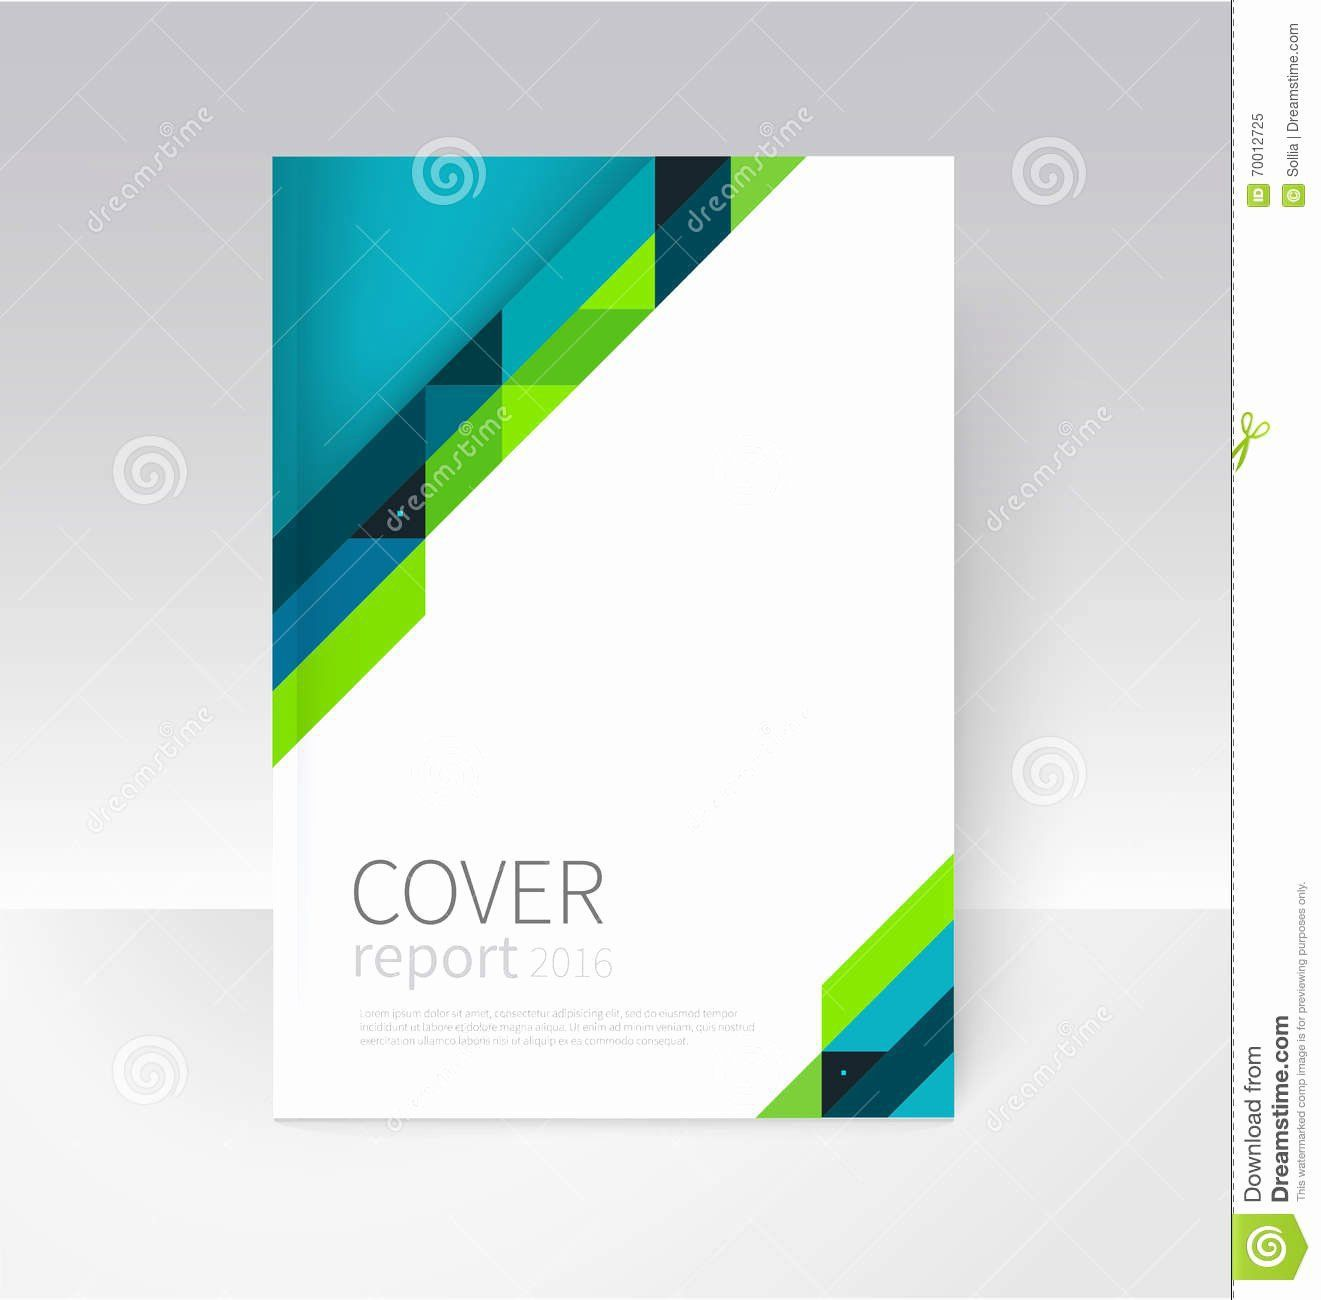 004 Breathtaking Book Cover Page Design Template Free Download High Definition  FrontFull